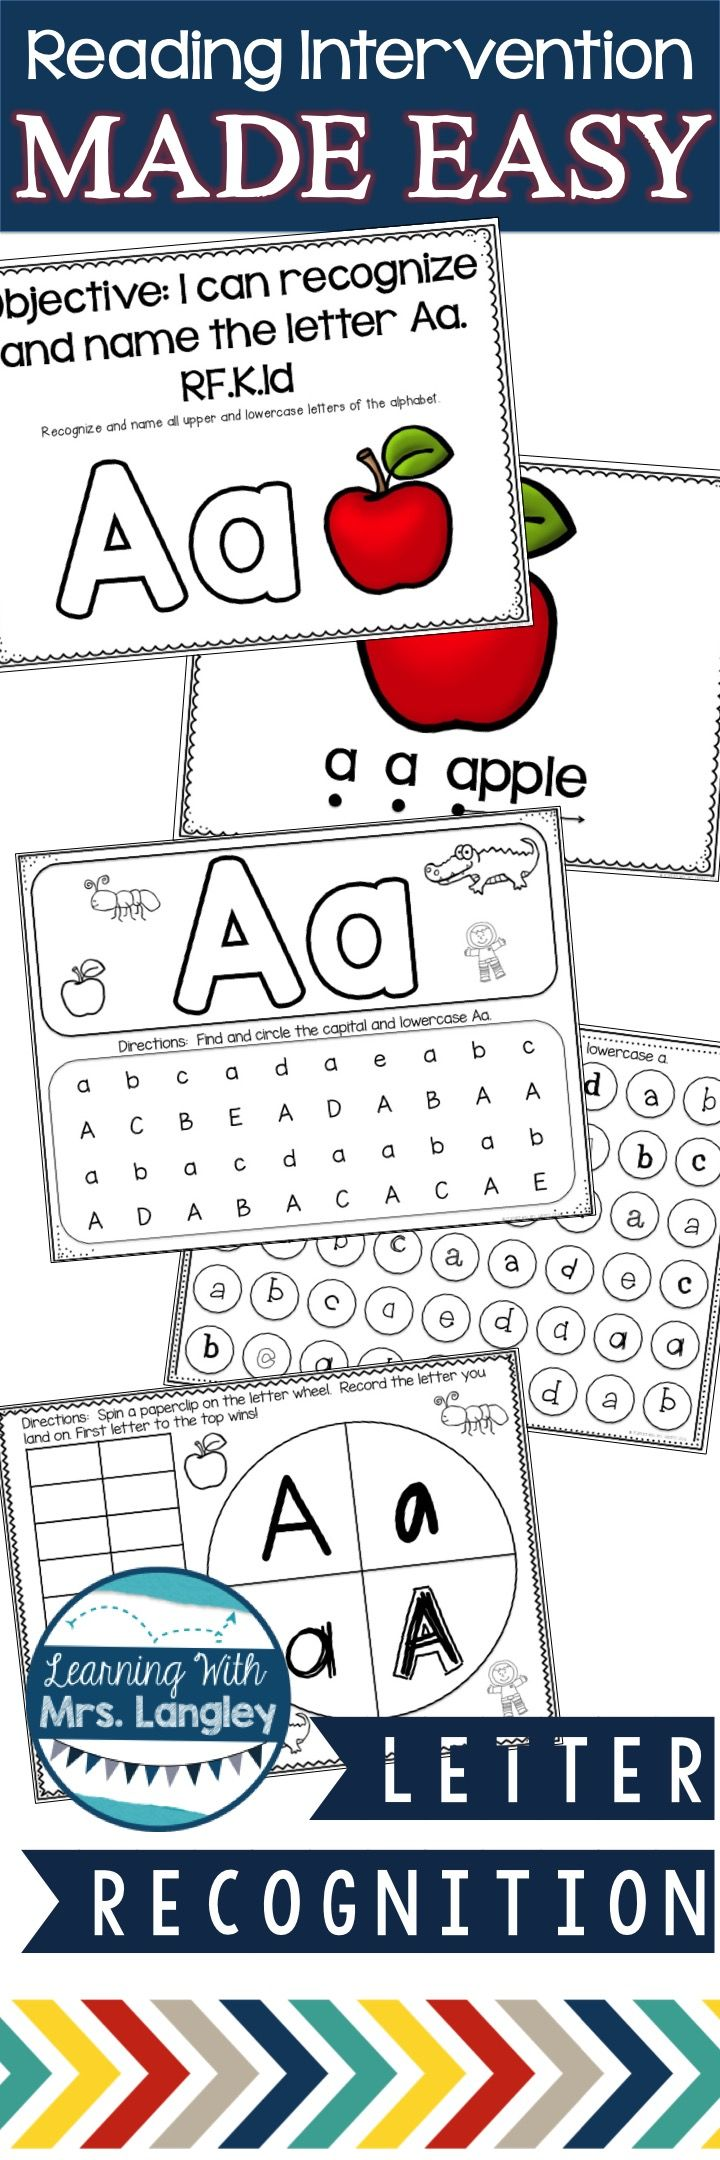 """READING INTERVENTION LETTER RECOGNITION Finally, reading intervention MADE EASY! Letter recognition is the first thing we focus on in our Kindergarten classroom and this product has it all! This unit is focused on letter recognition. Any of my students that have not mastered their letter names are in my """"low"""" group and I meet with them daily with these materials. They are hands on, engaging, consistent, and fun!"""